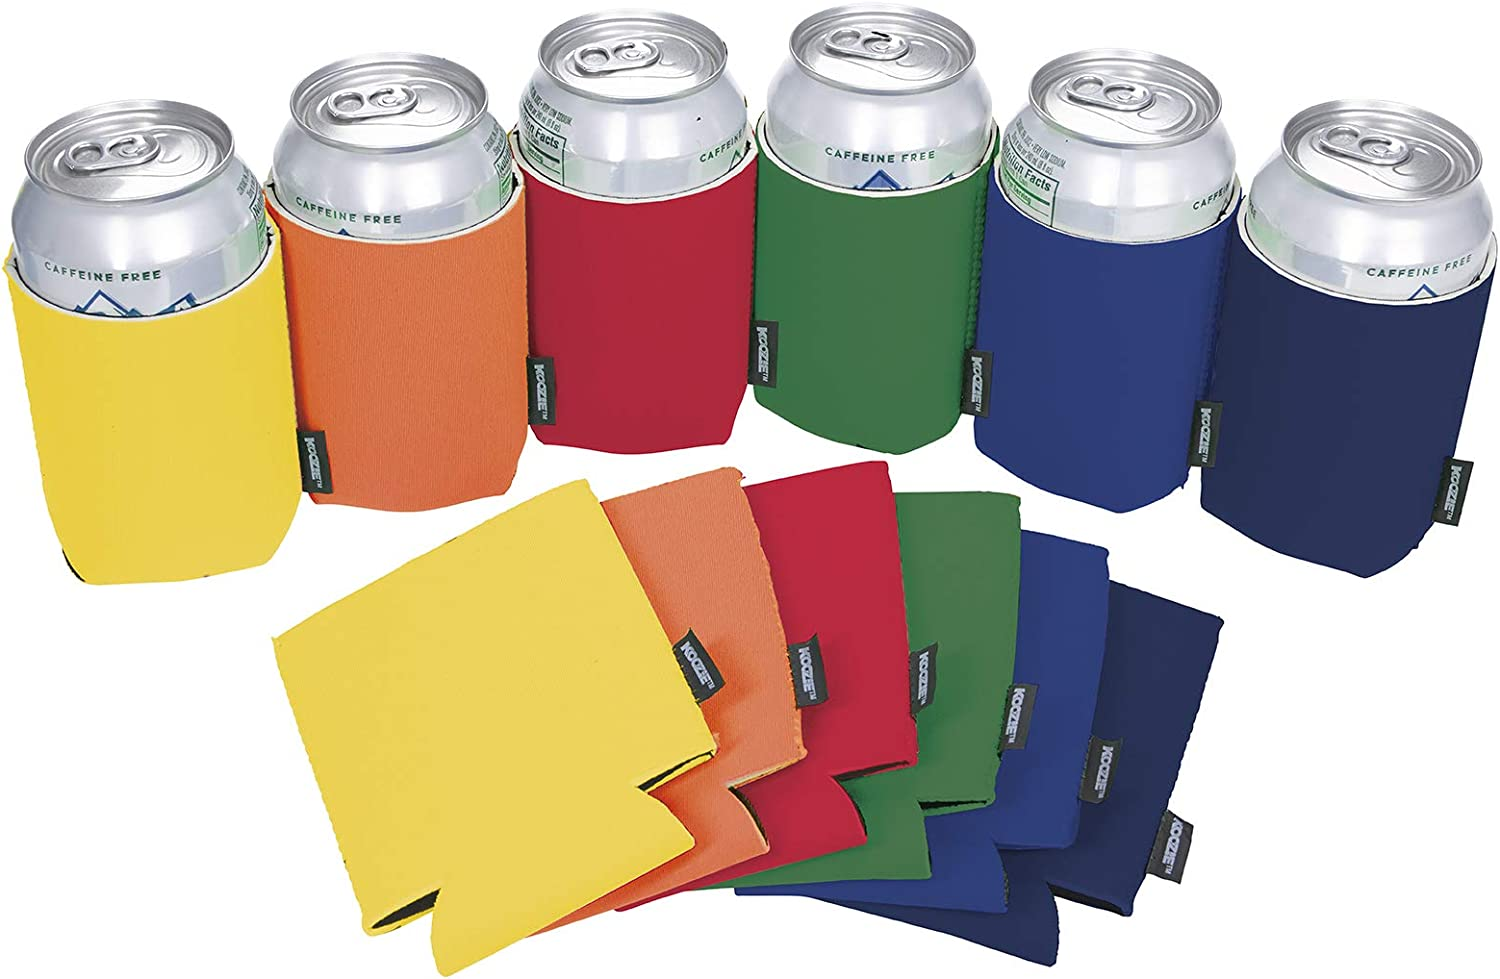 Koozie Can Cooler Blank Neoprene Beer Koozie for Cans, Bulk Insulated 12oz Beverage Holder Personalized Gifts for Events, Bachelorette Parties, Weddings, Birthdays - Pack of 12 Sleeves (Multi-Color)